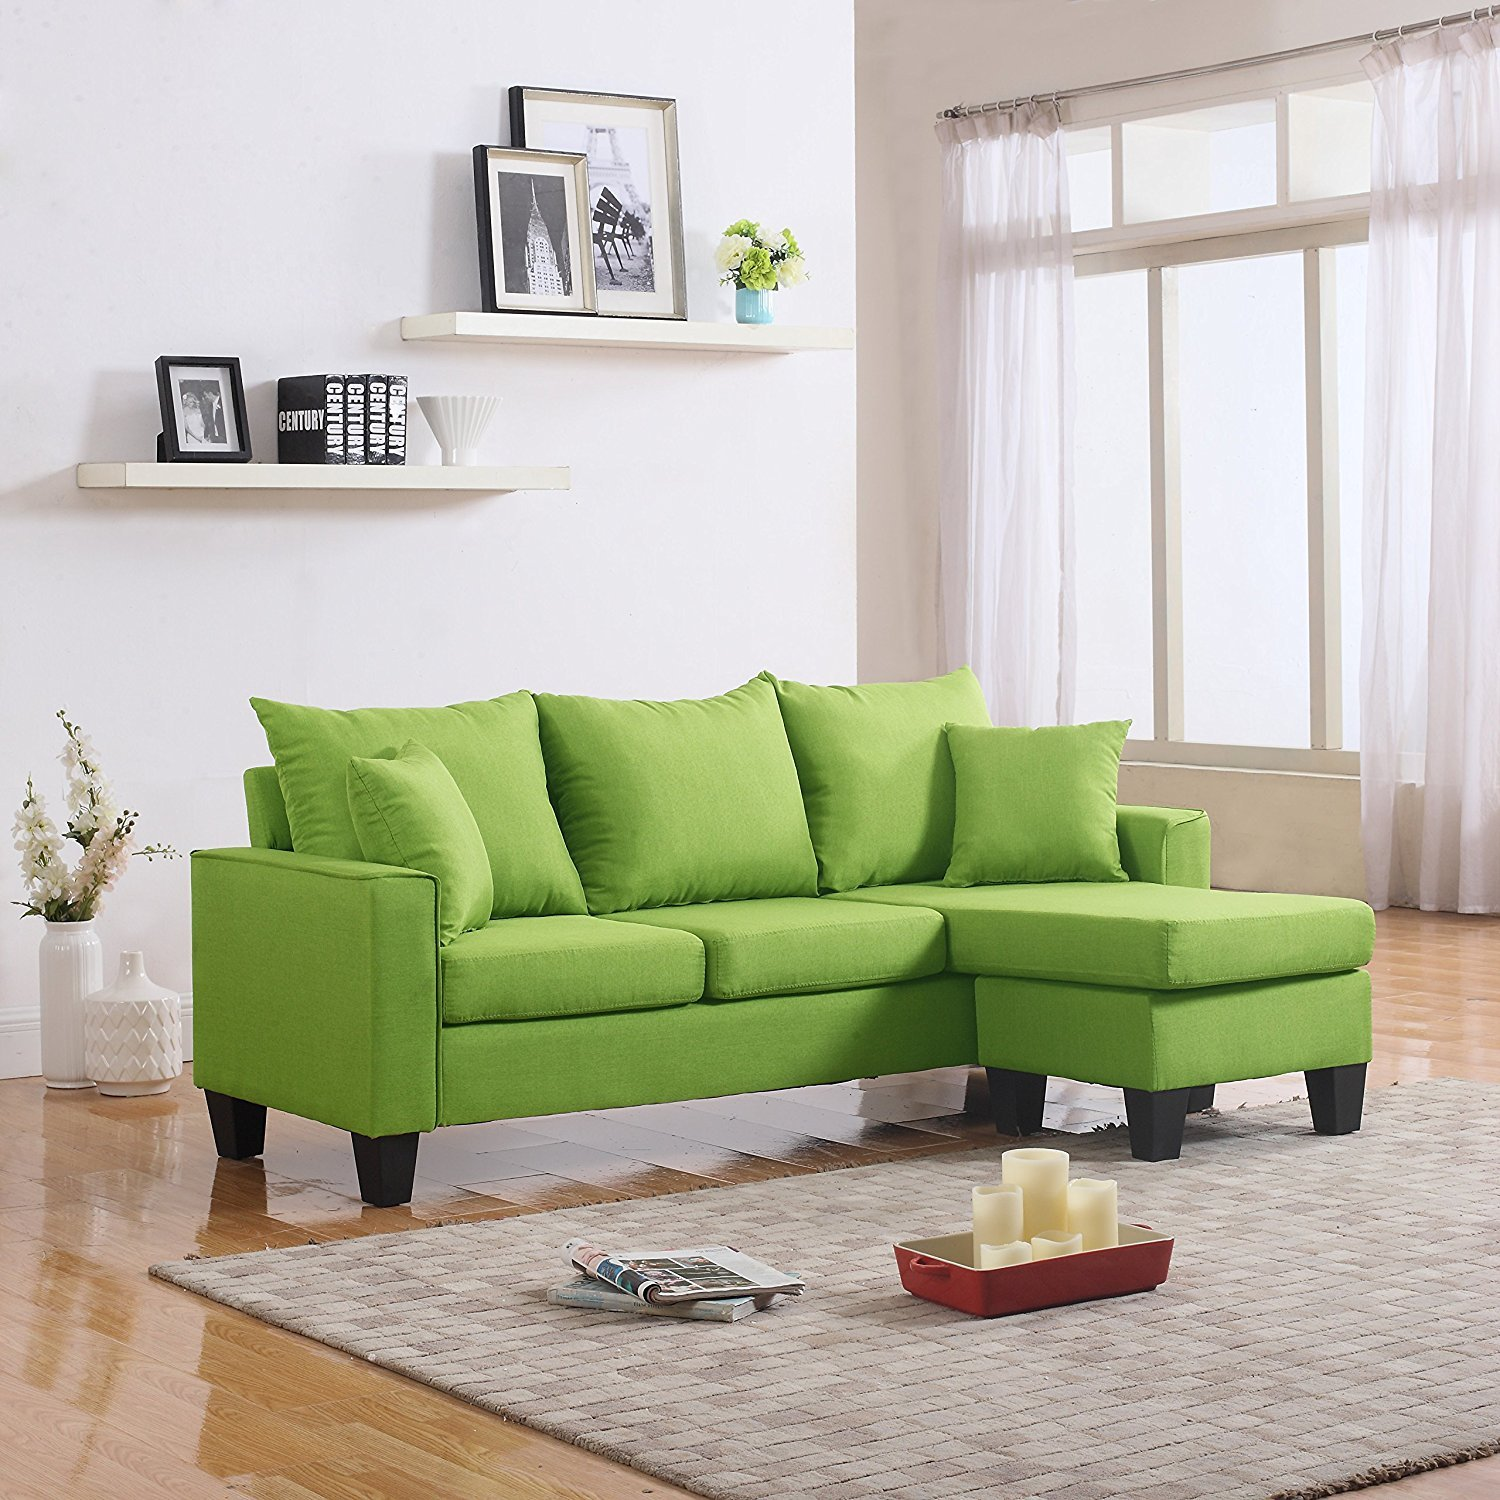 Magnificent Details About Modern Linen Fabric Small Space Sectional Sofa With Reversible Chaise Green Short Links Chair Design For Home Short Linksinfo